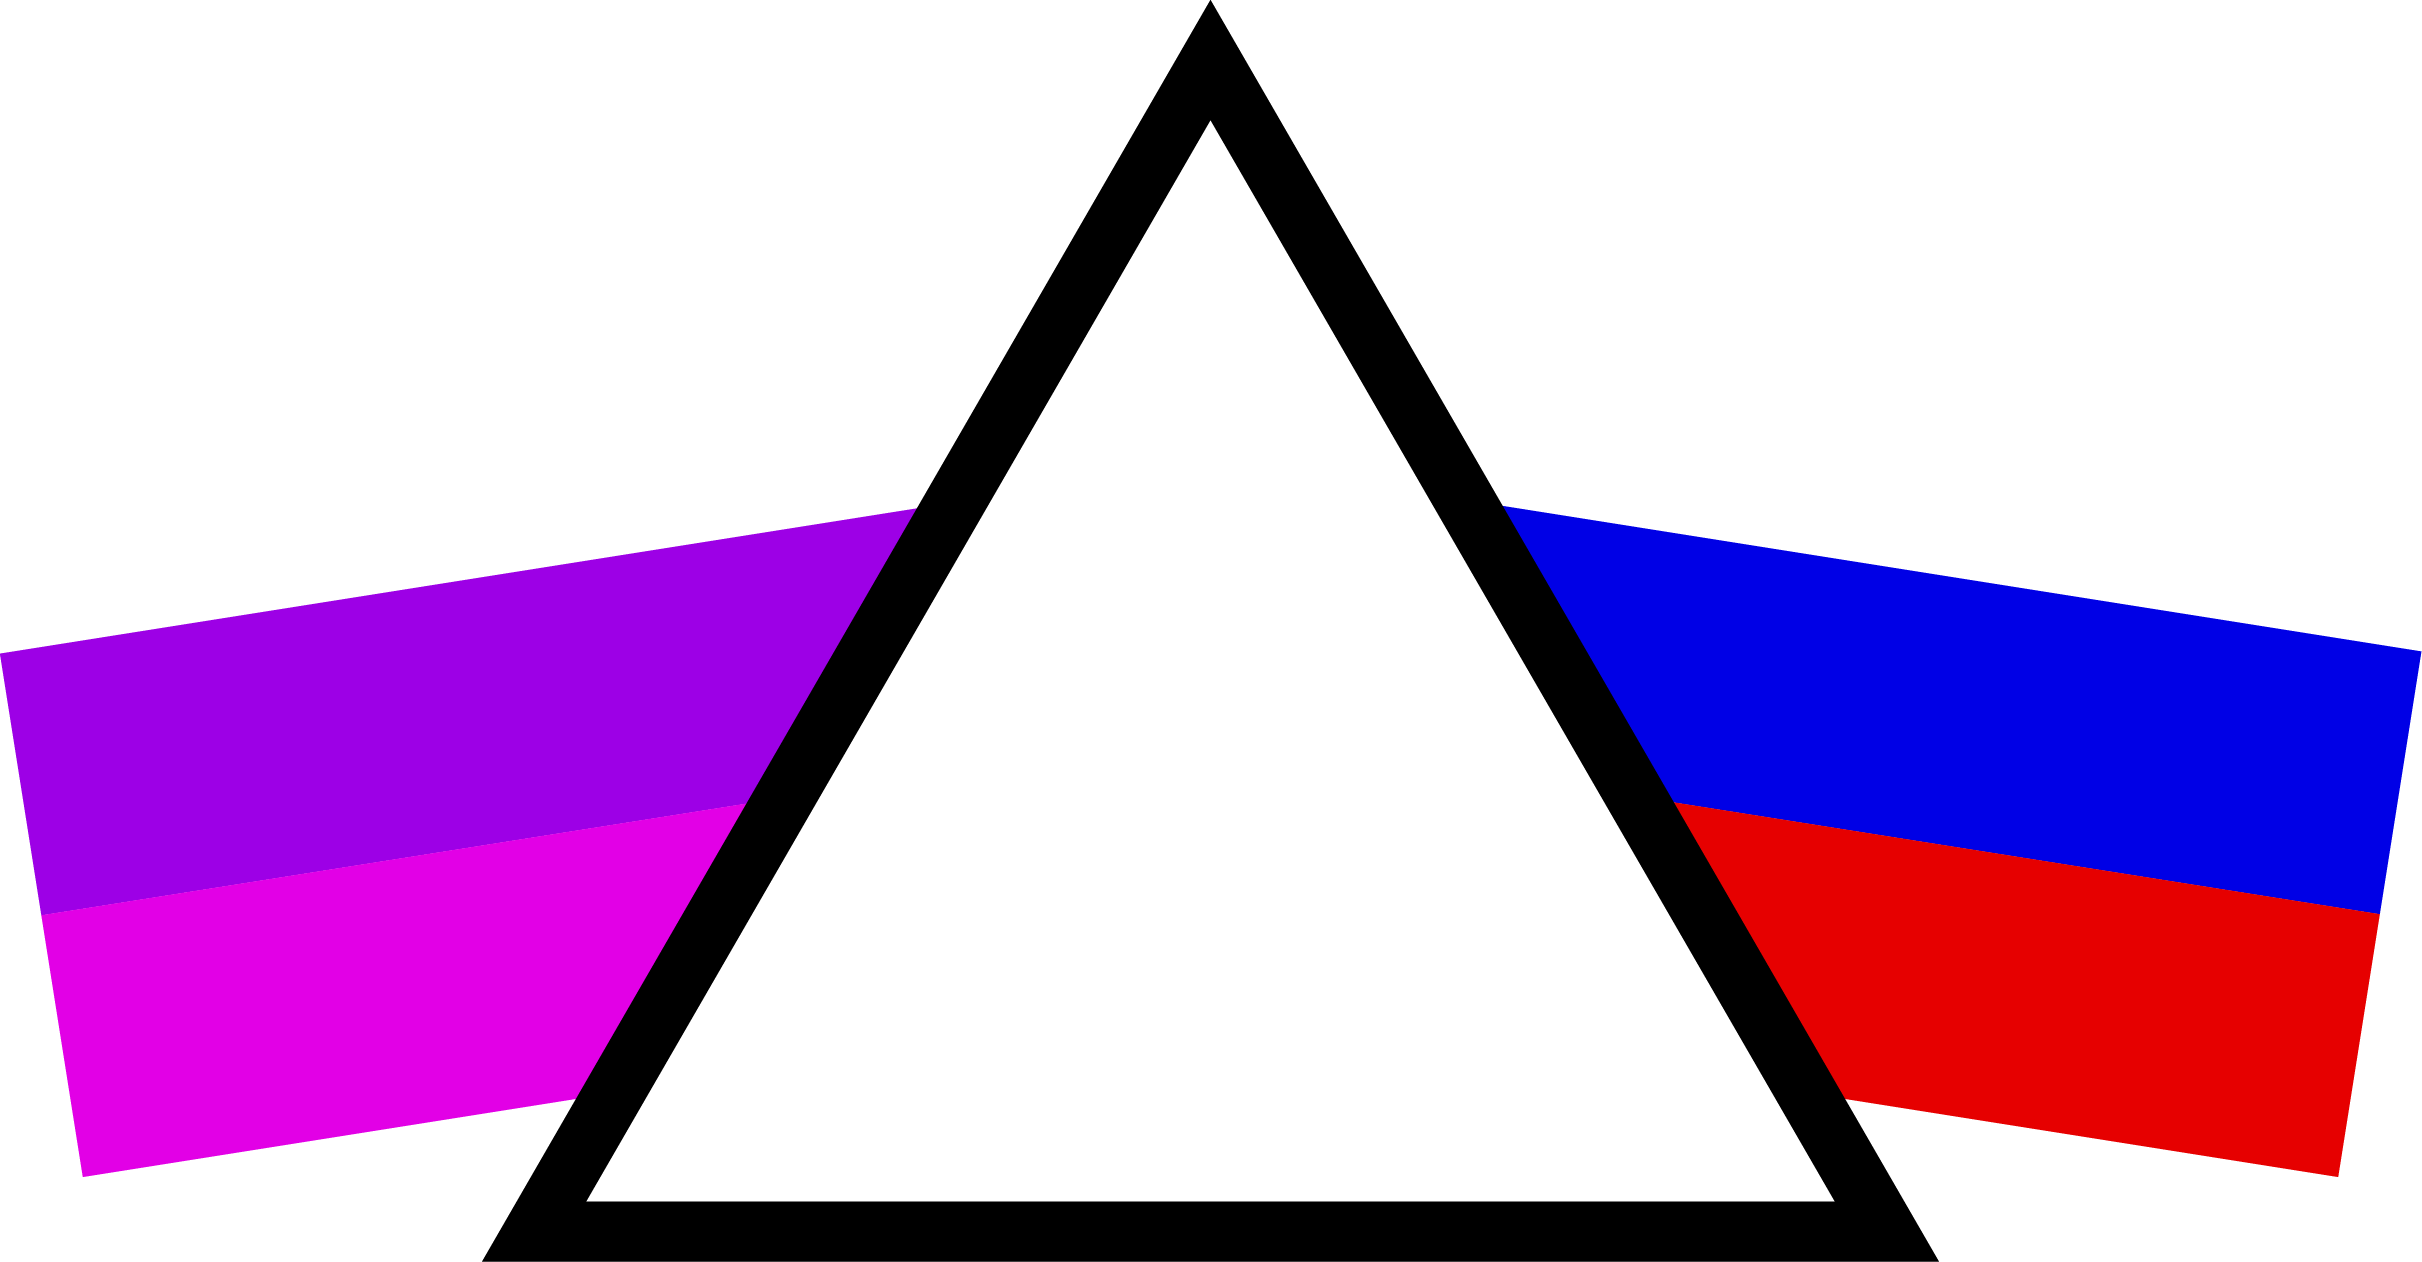 Logo of blind source separation for time and space project showing a prism separating two rays of mixed colors into base colors